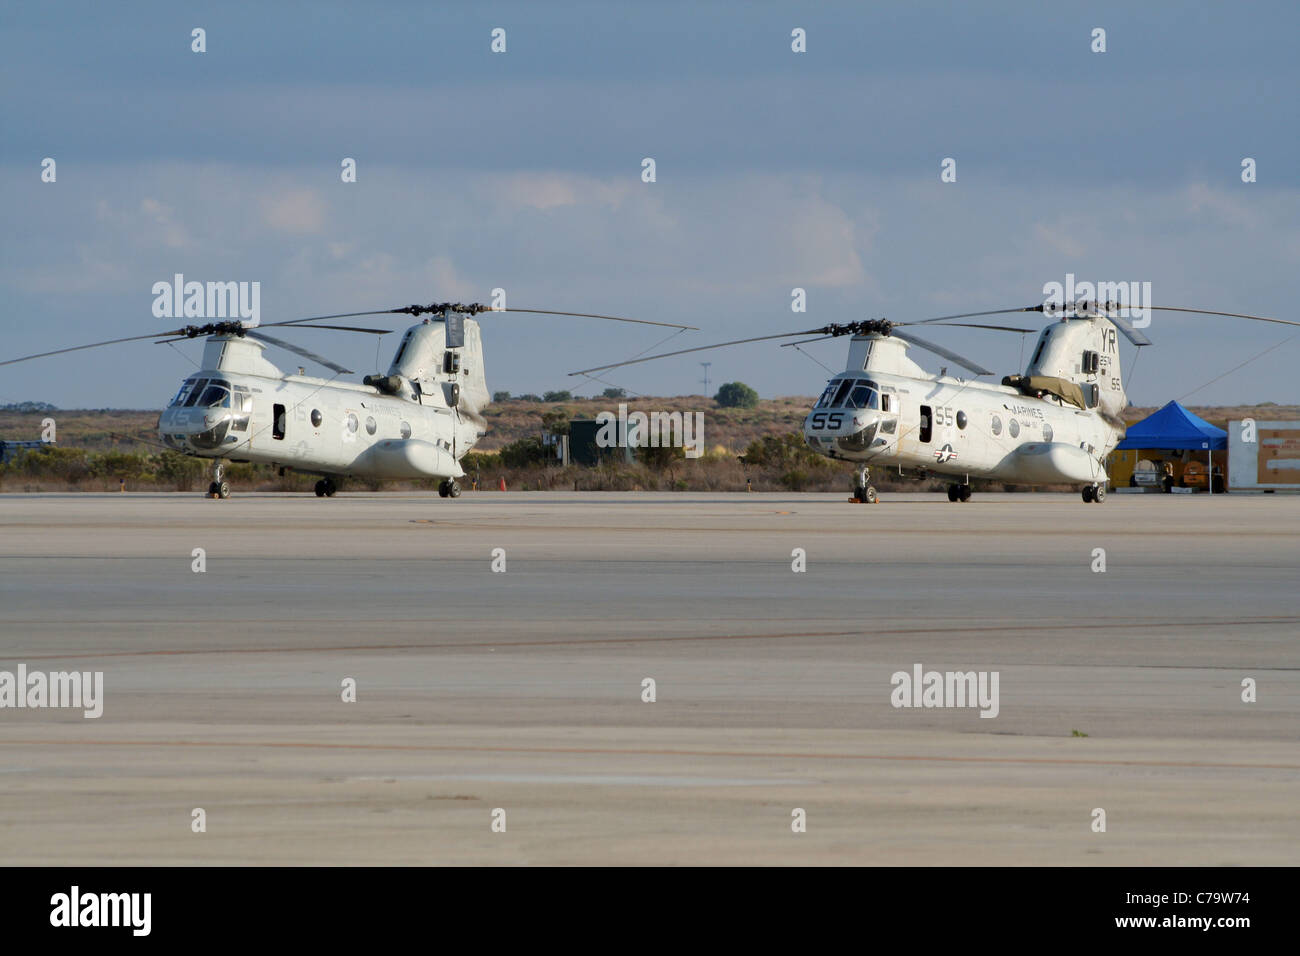 US MArines CH-46 Sea Knight helicopters on Miramar Air Station in California, USA. Stock Photo